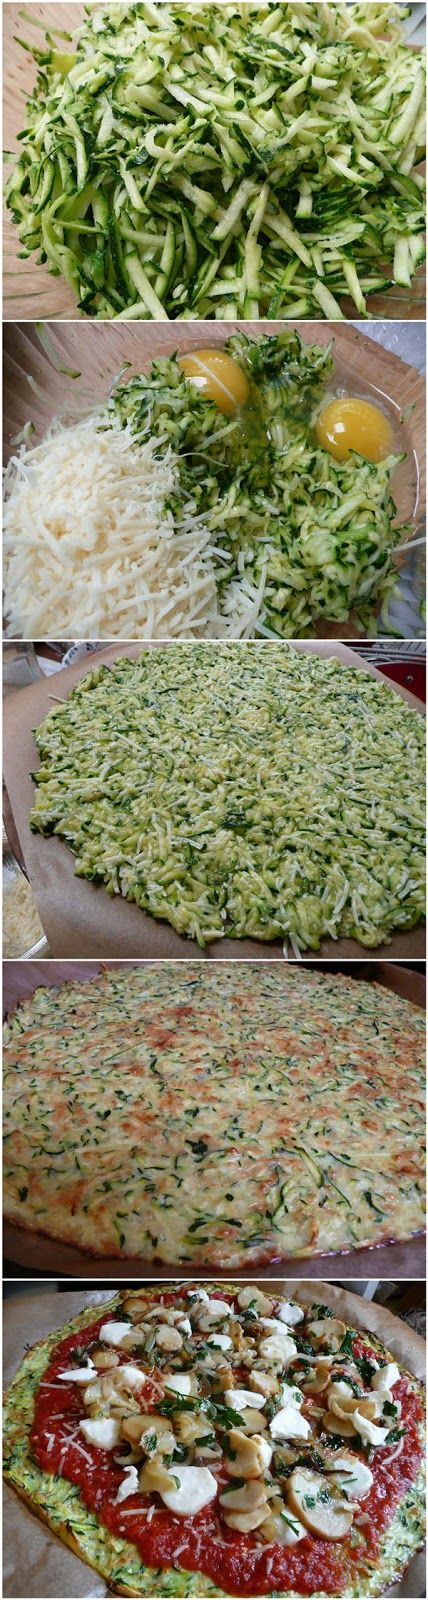 Zucchini Crust Pizza--this looks delicious